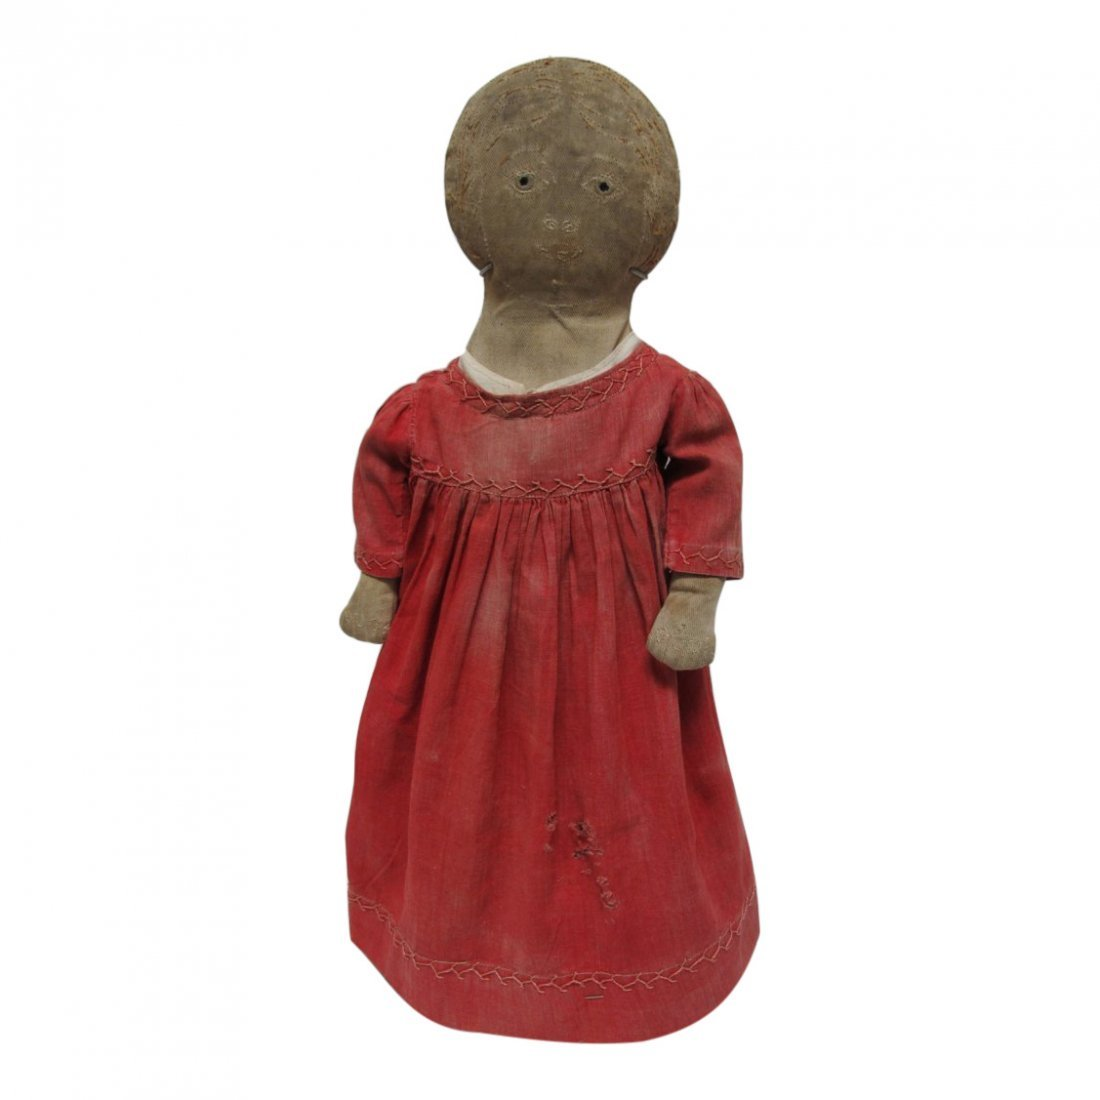 Early 20th C Cloth Doll with Red Dress